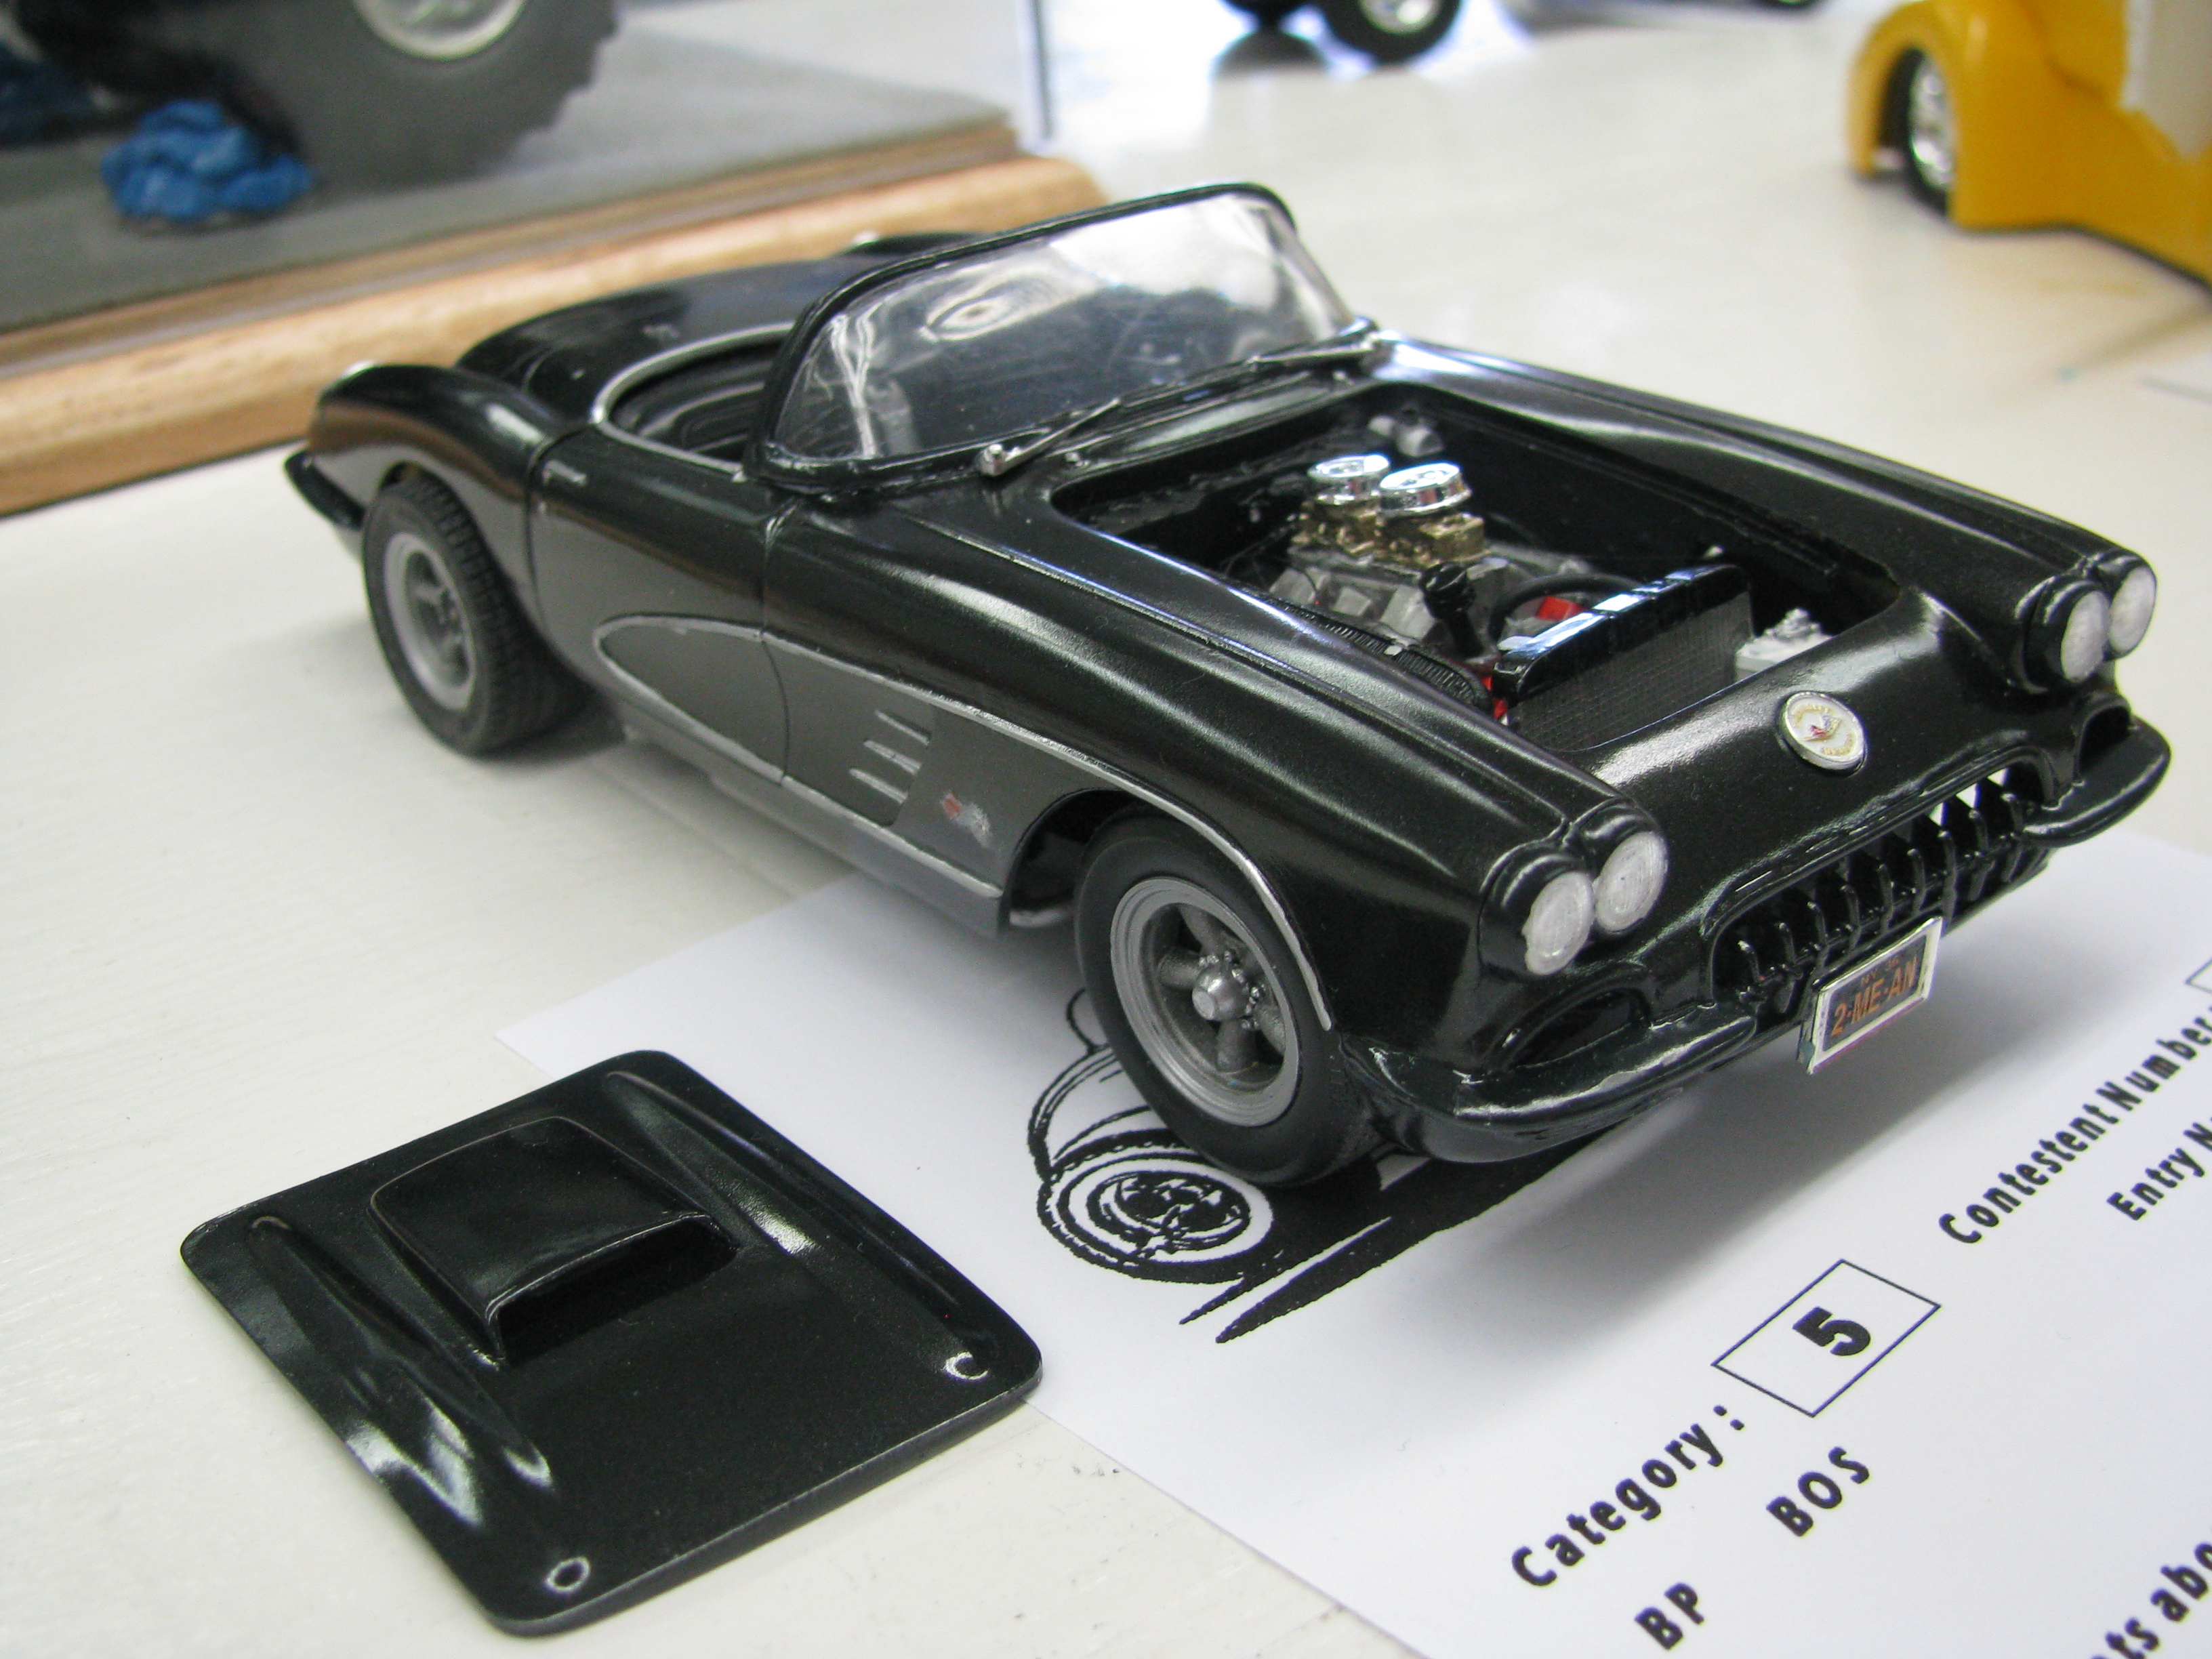 View photo of 1960 Corvette